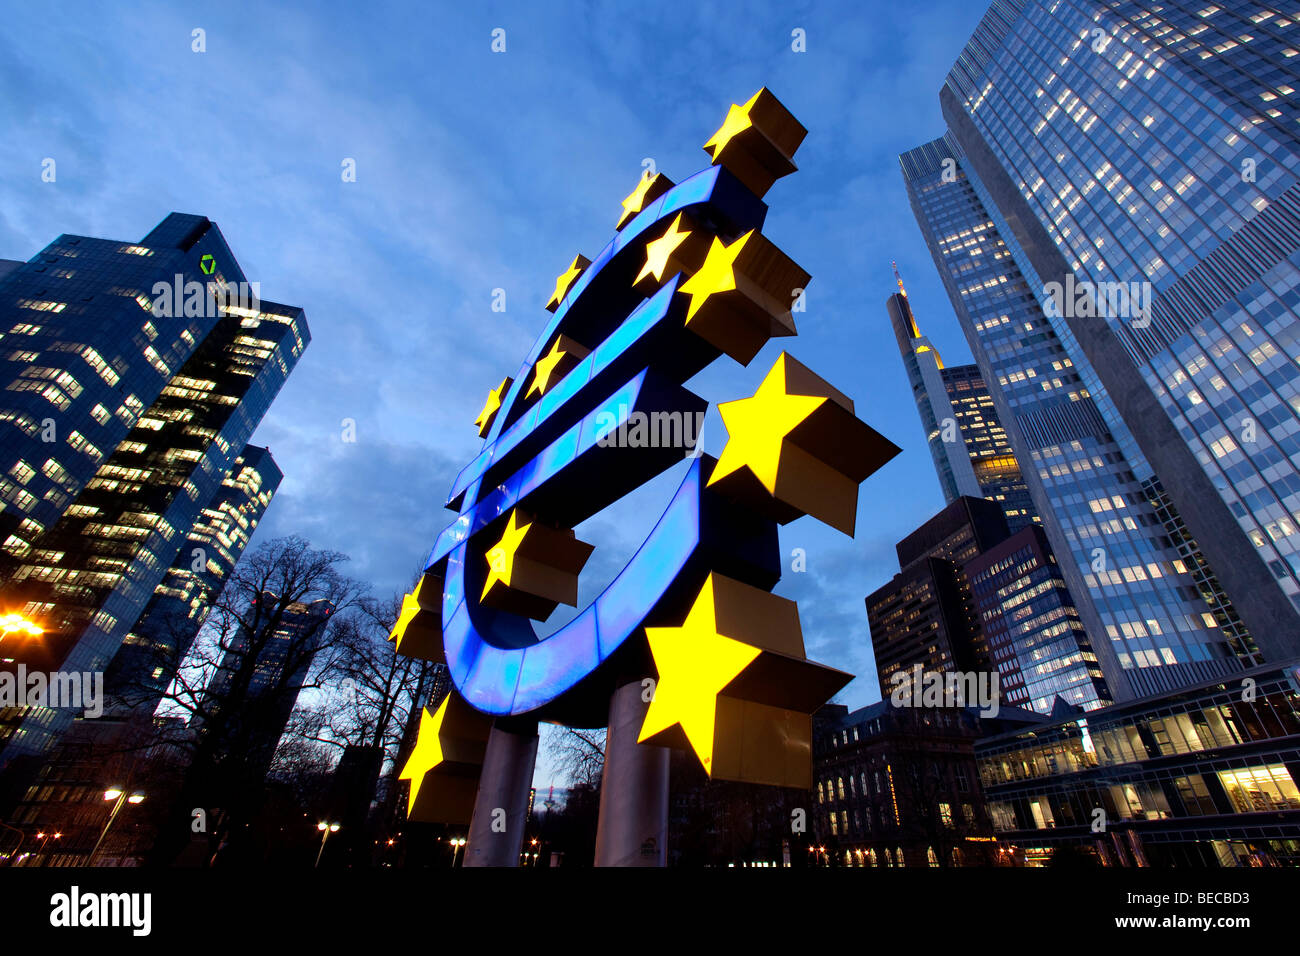 European Central Bank, right, with the euro symbol and Dresdner Bank, left, in Frankfurt am Main, Hesse, Germany, - Stock Image